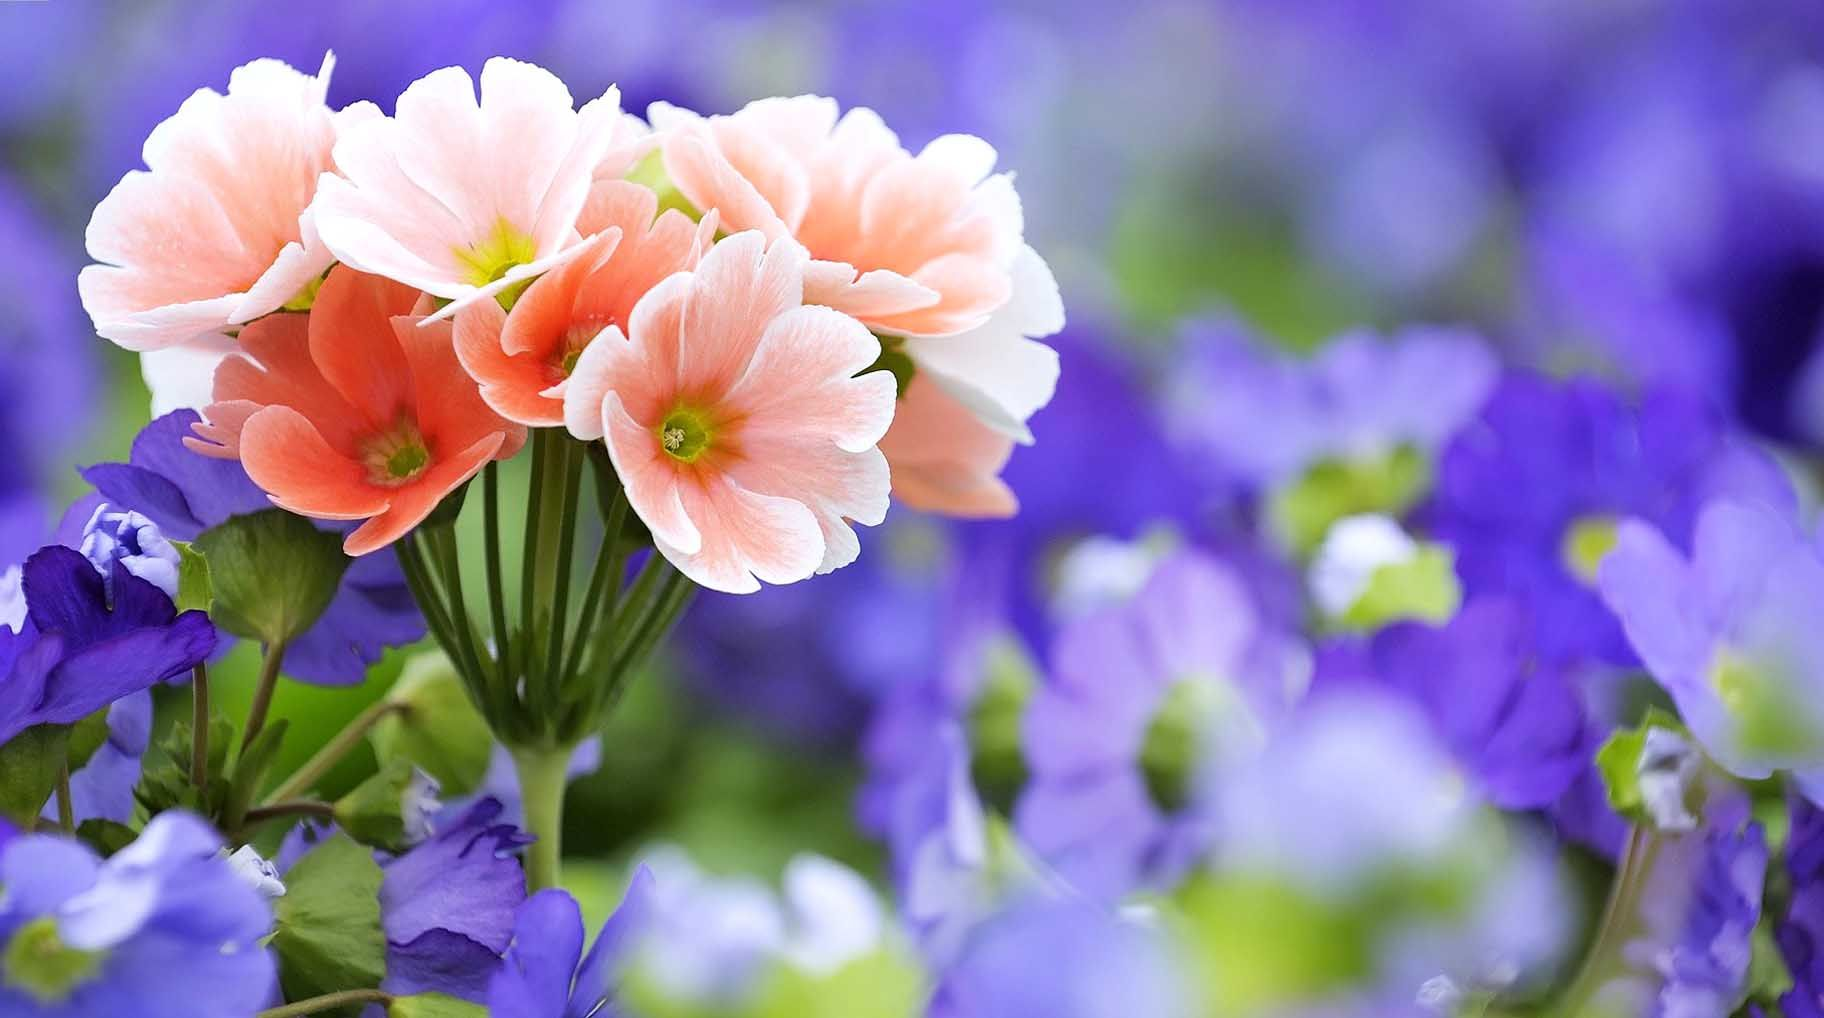 Permalink to Hd Flower Pictures Wallpaper